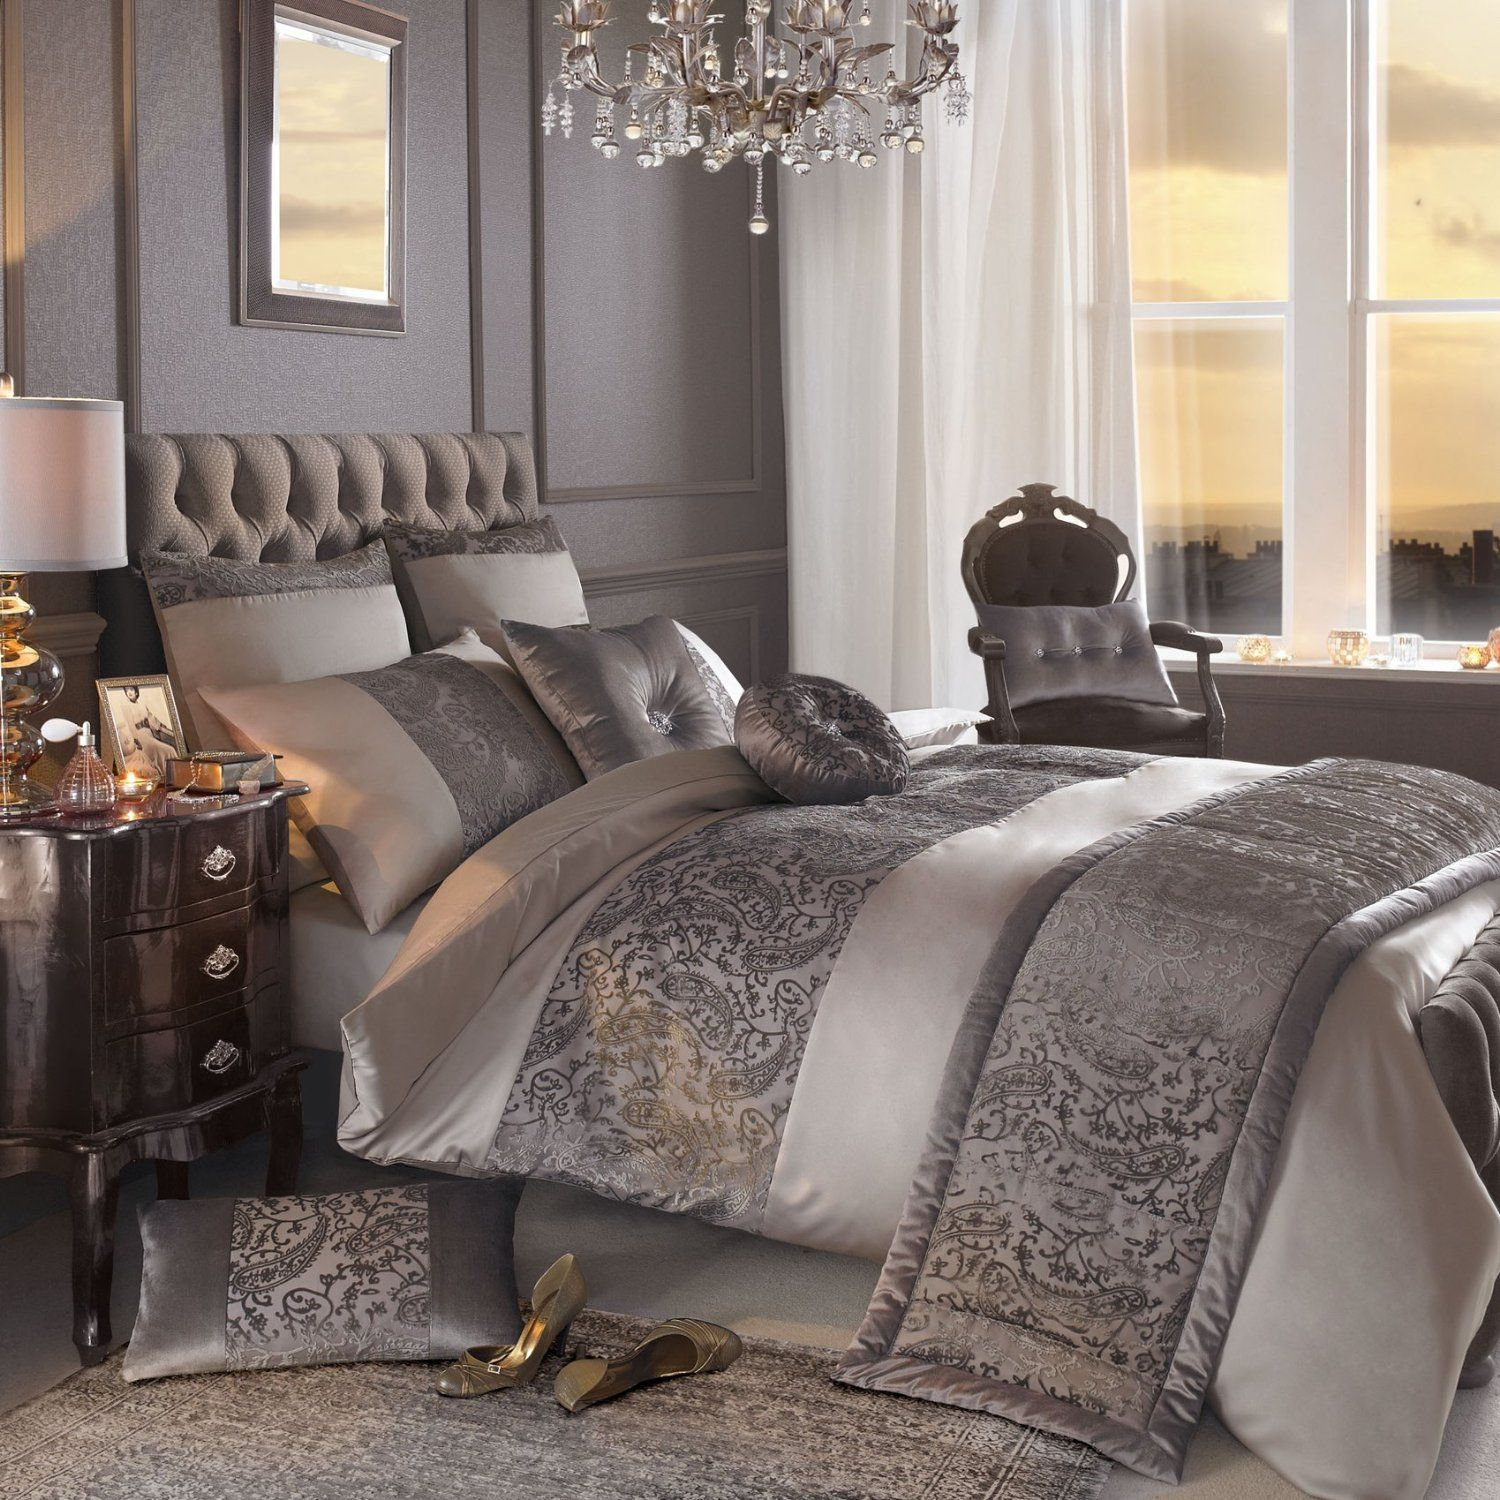 fabrics quality isabella with stylish mu bed bedding rane hc french combining collection designer designs